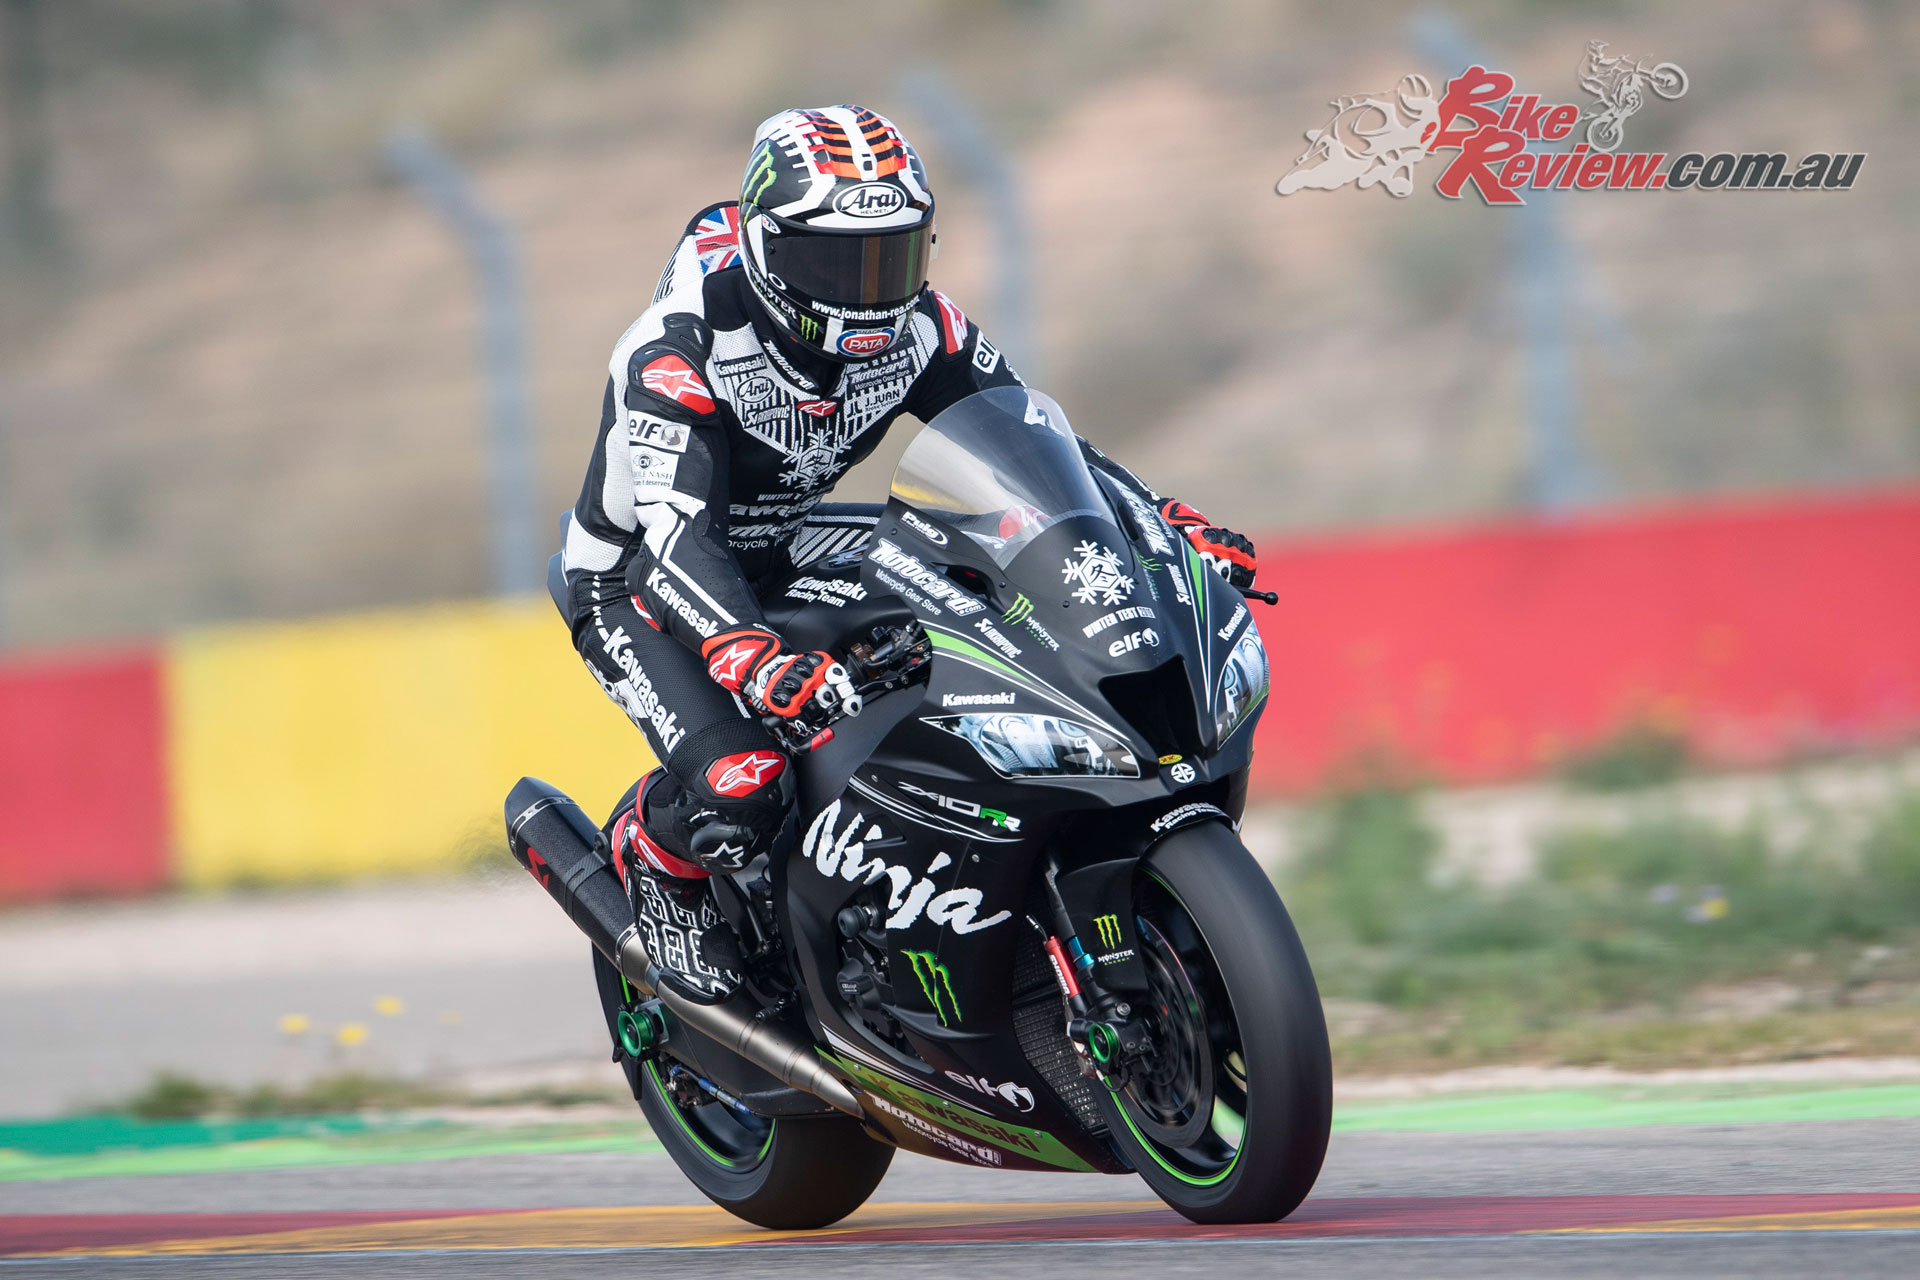 Jonathan Rea - Aragon Test November 2018 - Image by GeeBee Images